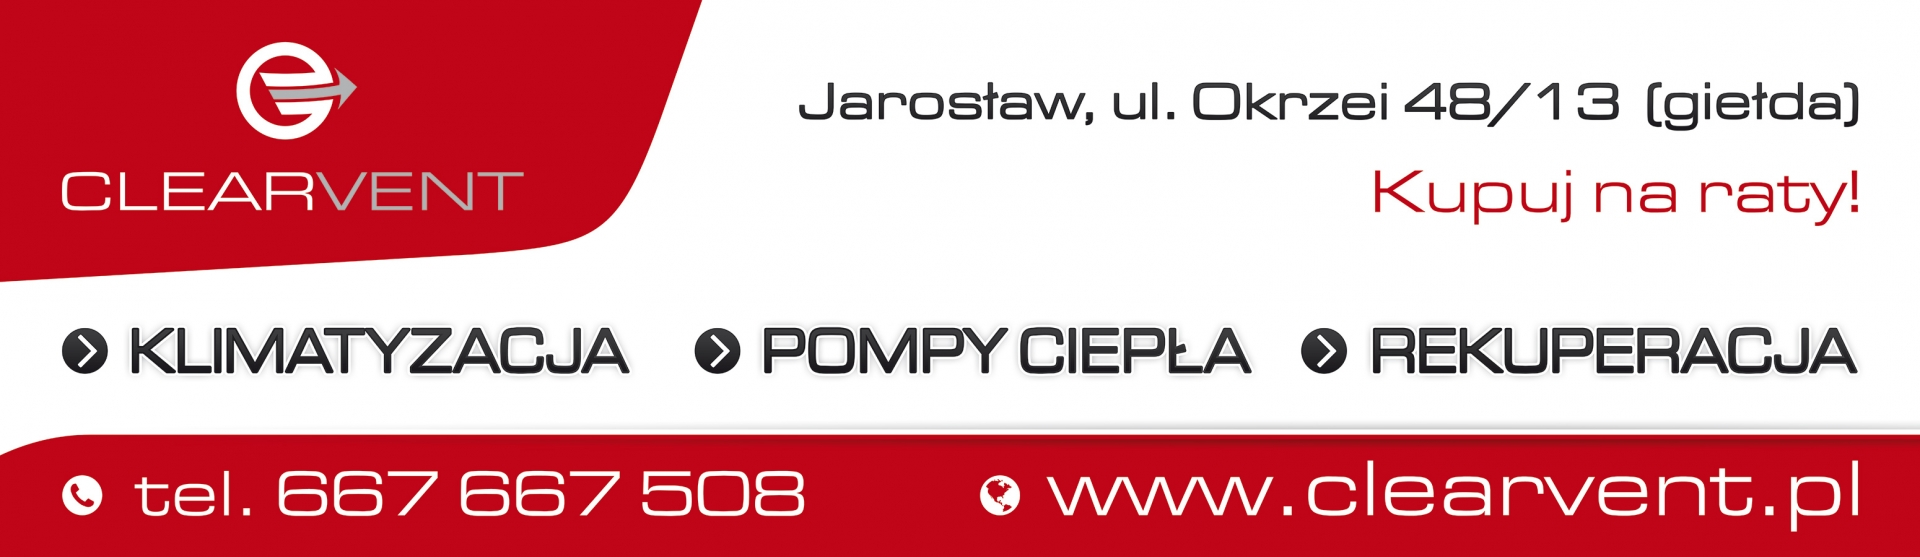 CLEARVENT - Banner 310x90cm Mały baner reklamowy